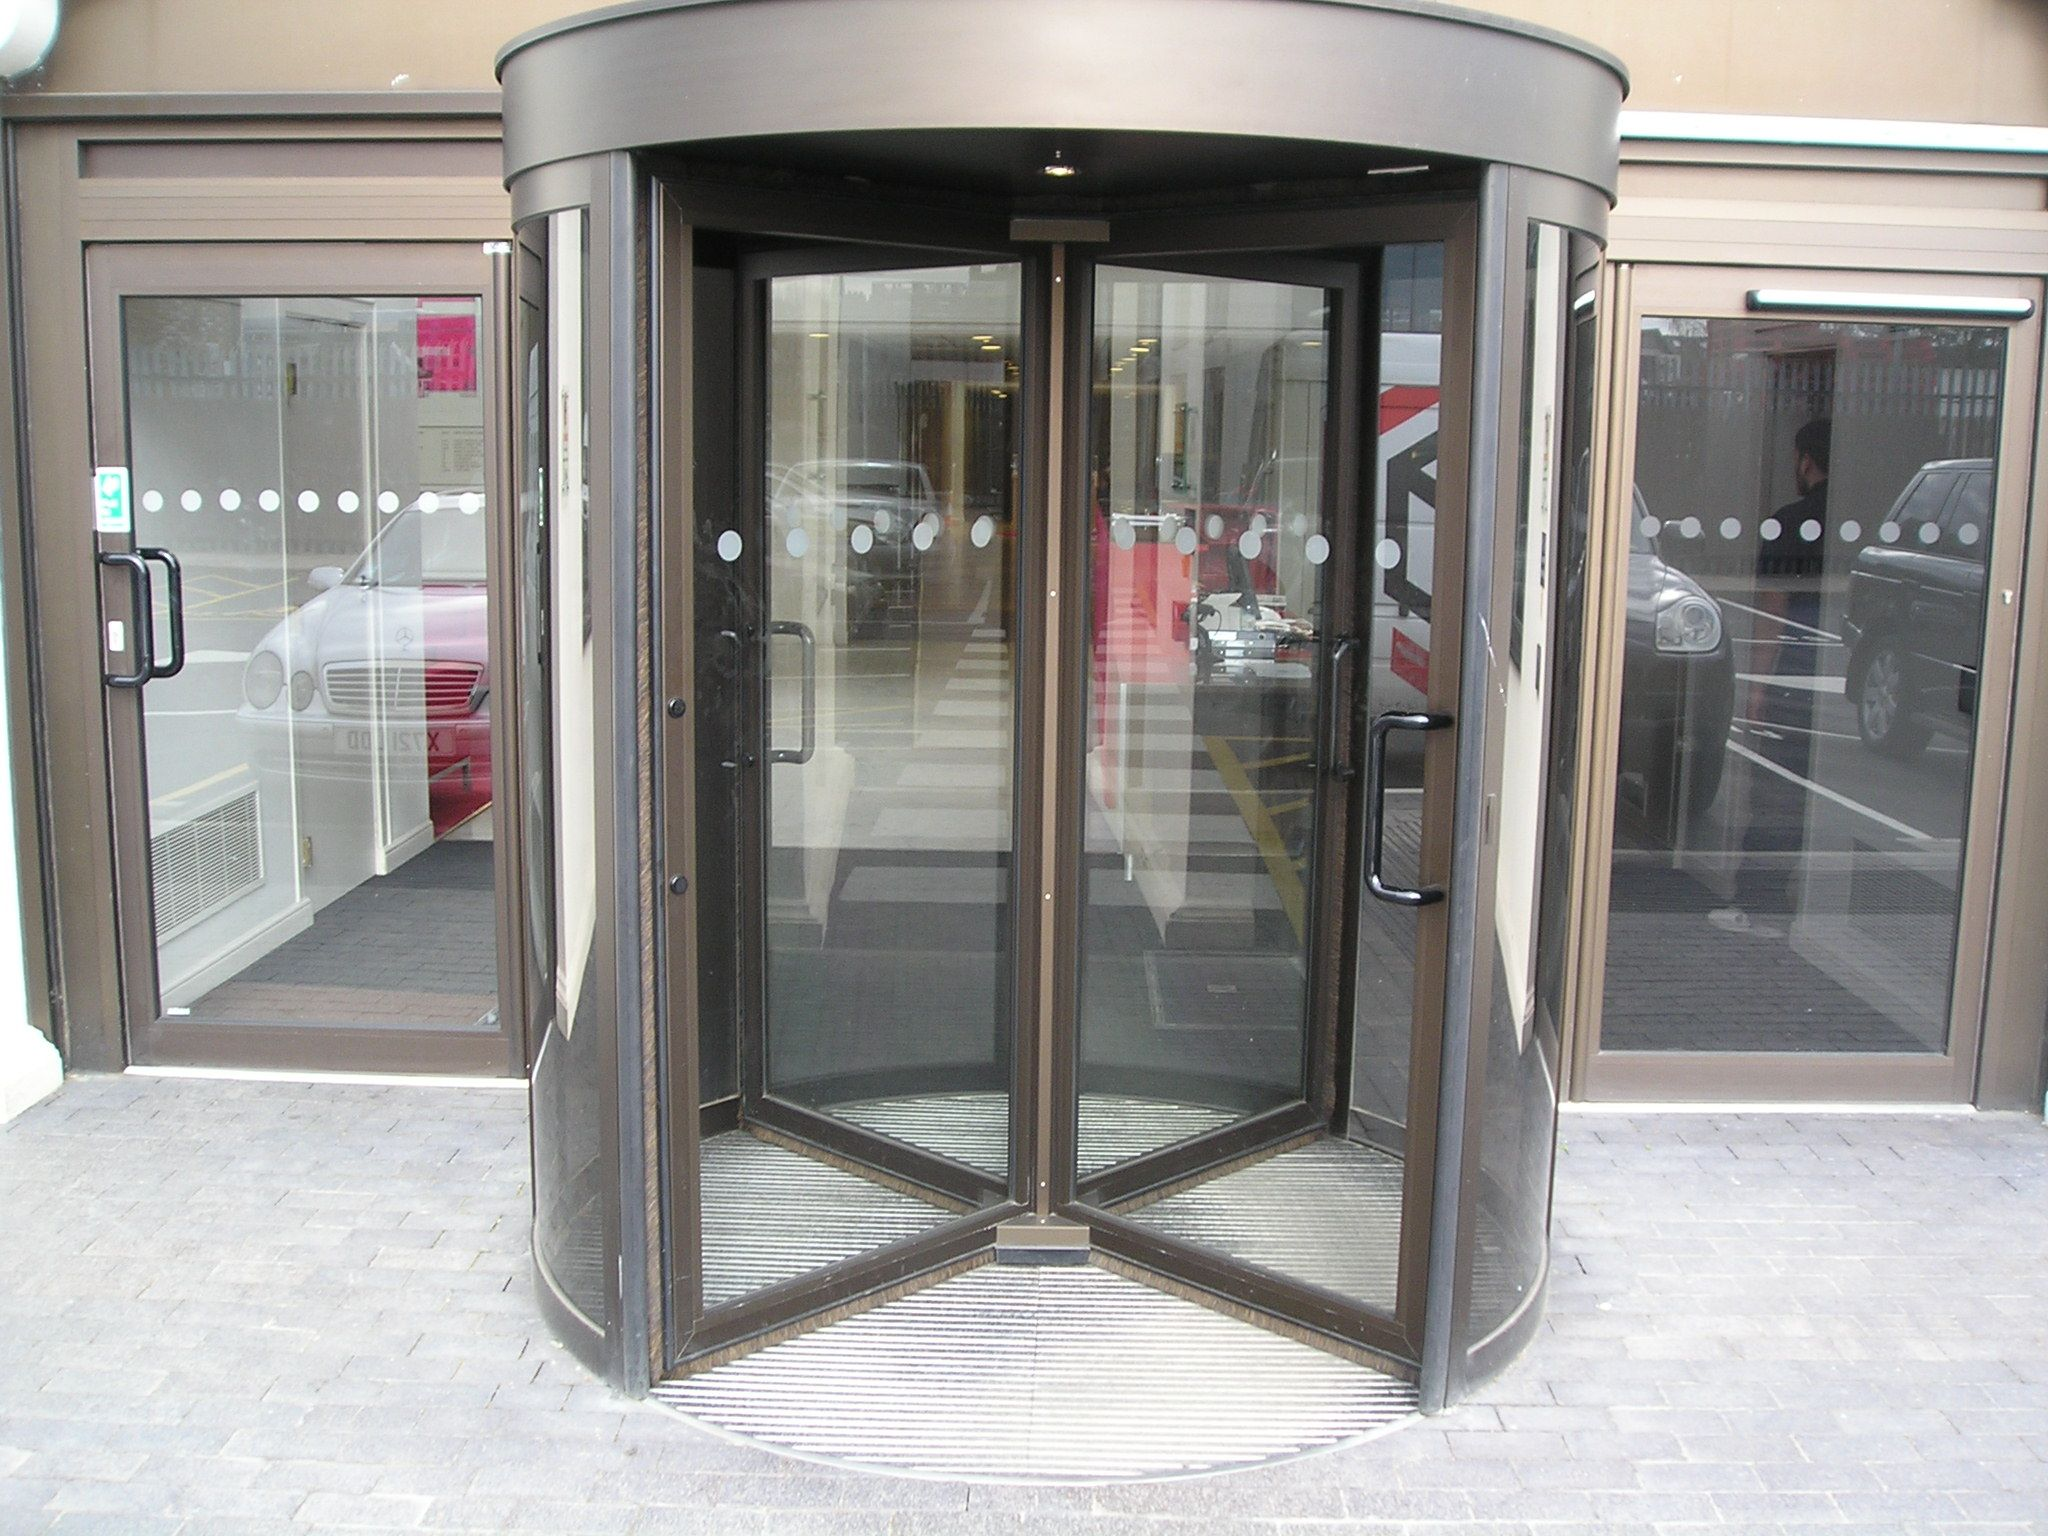 We Can Provide Automatic Revolving Door Solutions Tailored To Your Needs. Description From Automaticdoormaintenance. & Revolving Door \u0026 4000 Series \\u2013 All Glass Revolving Door From ... Pezcame.Com